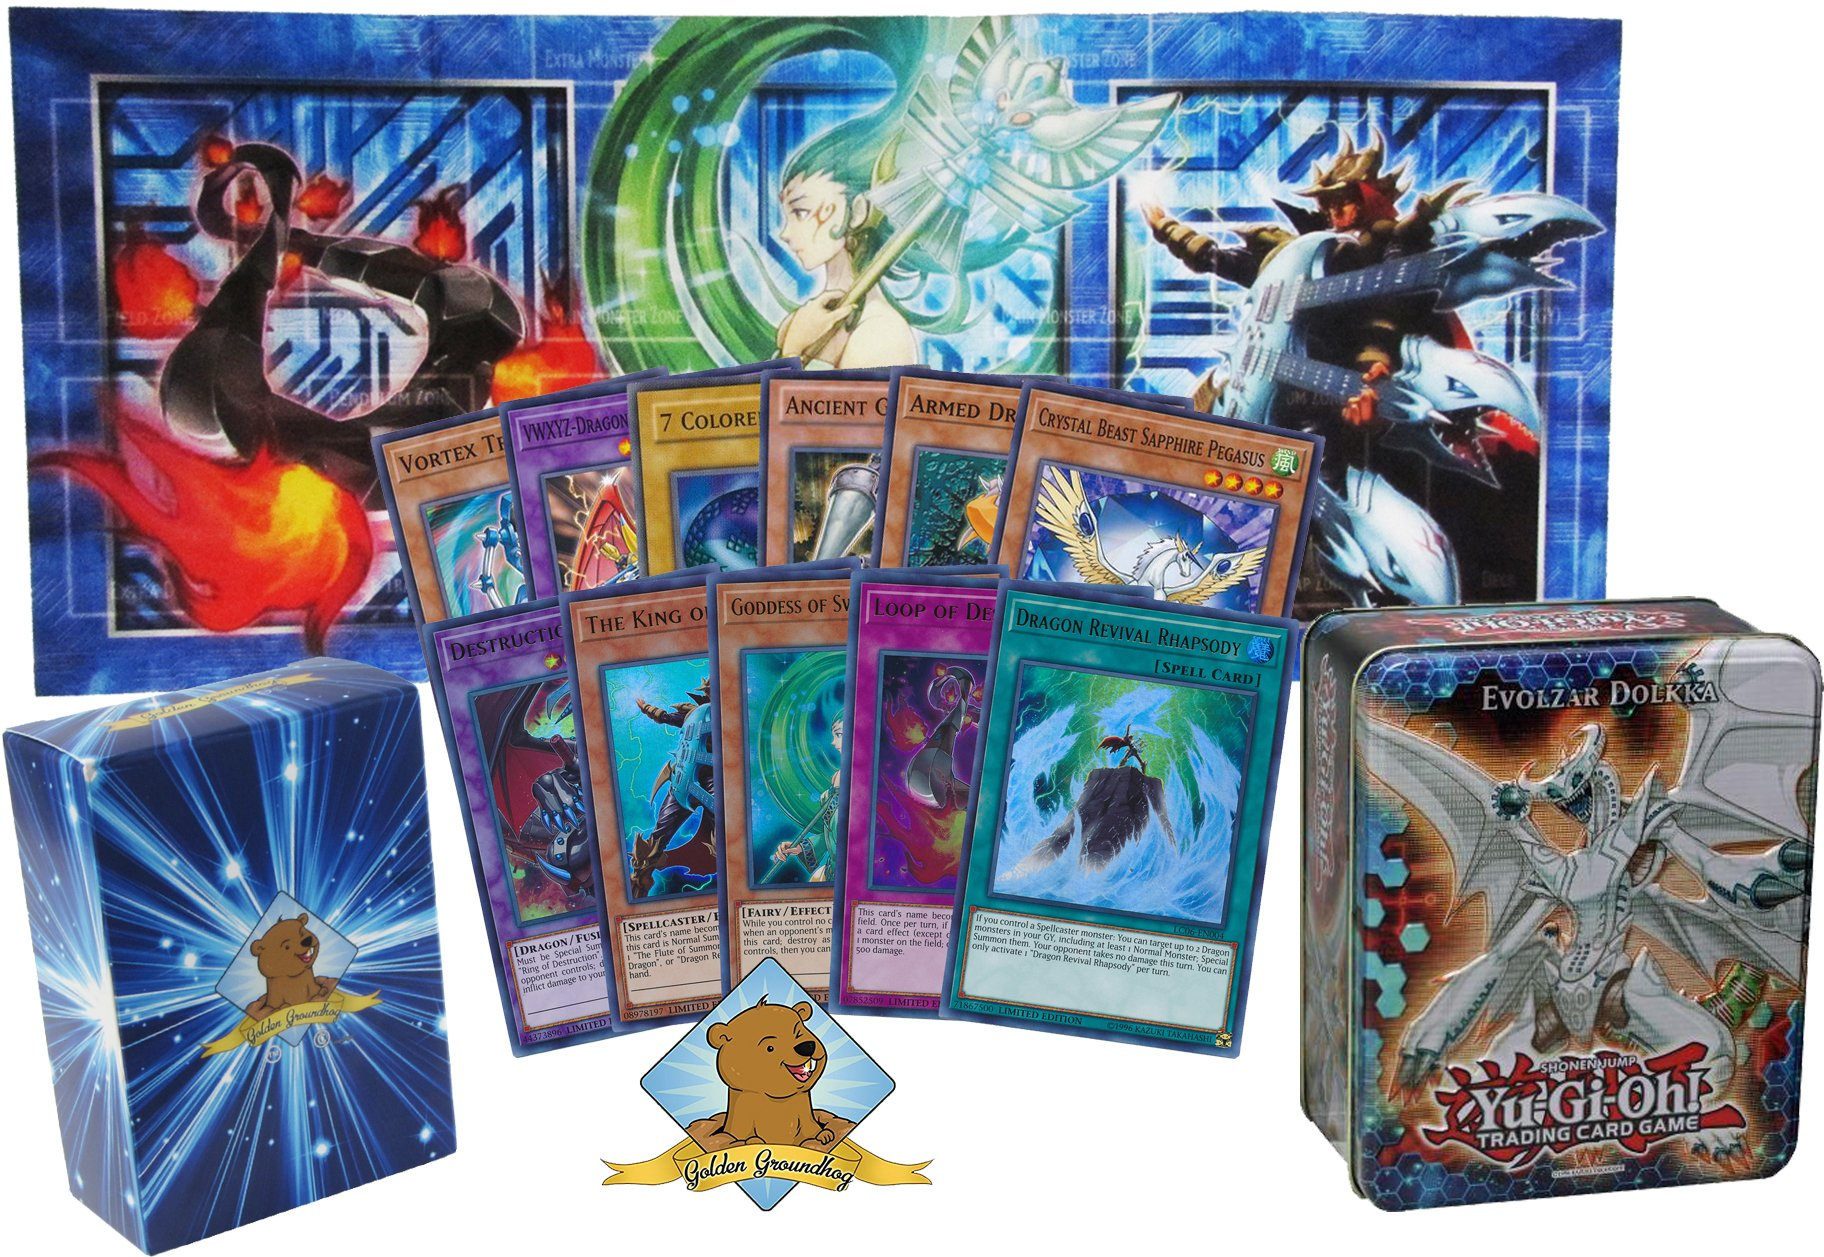 100 Yugioh Card Lot - Featuring All 5 Legendary Collection: Kaiba Holo Promos! with Yugioh Collector's Playmat! Comes in Tin! Golden Groundhog Deck Box!